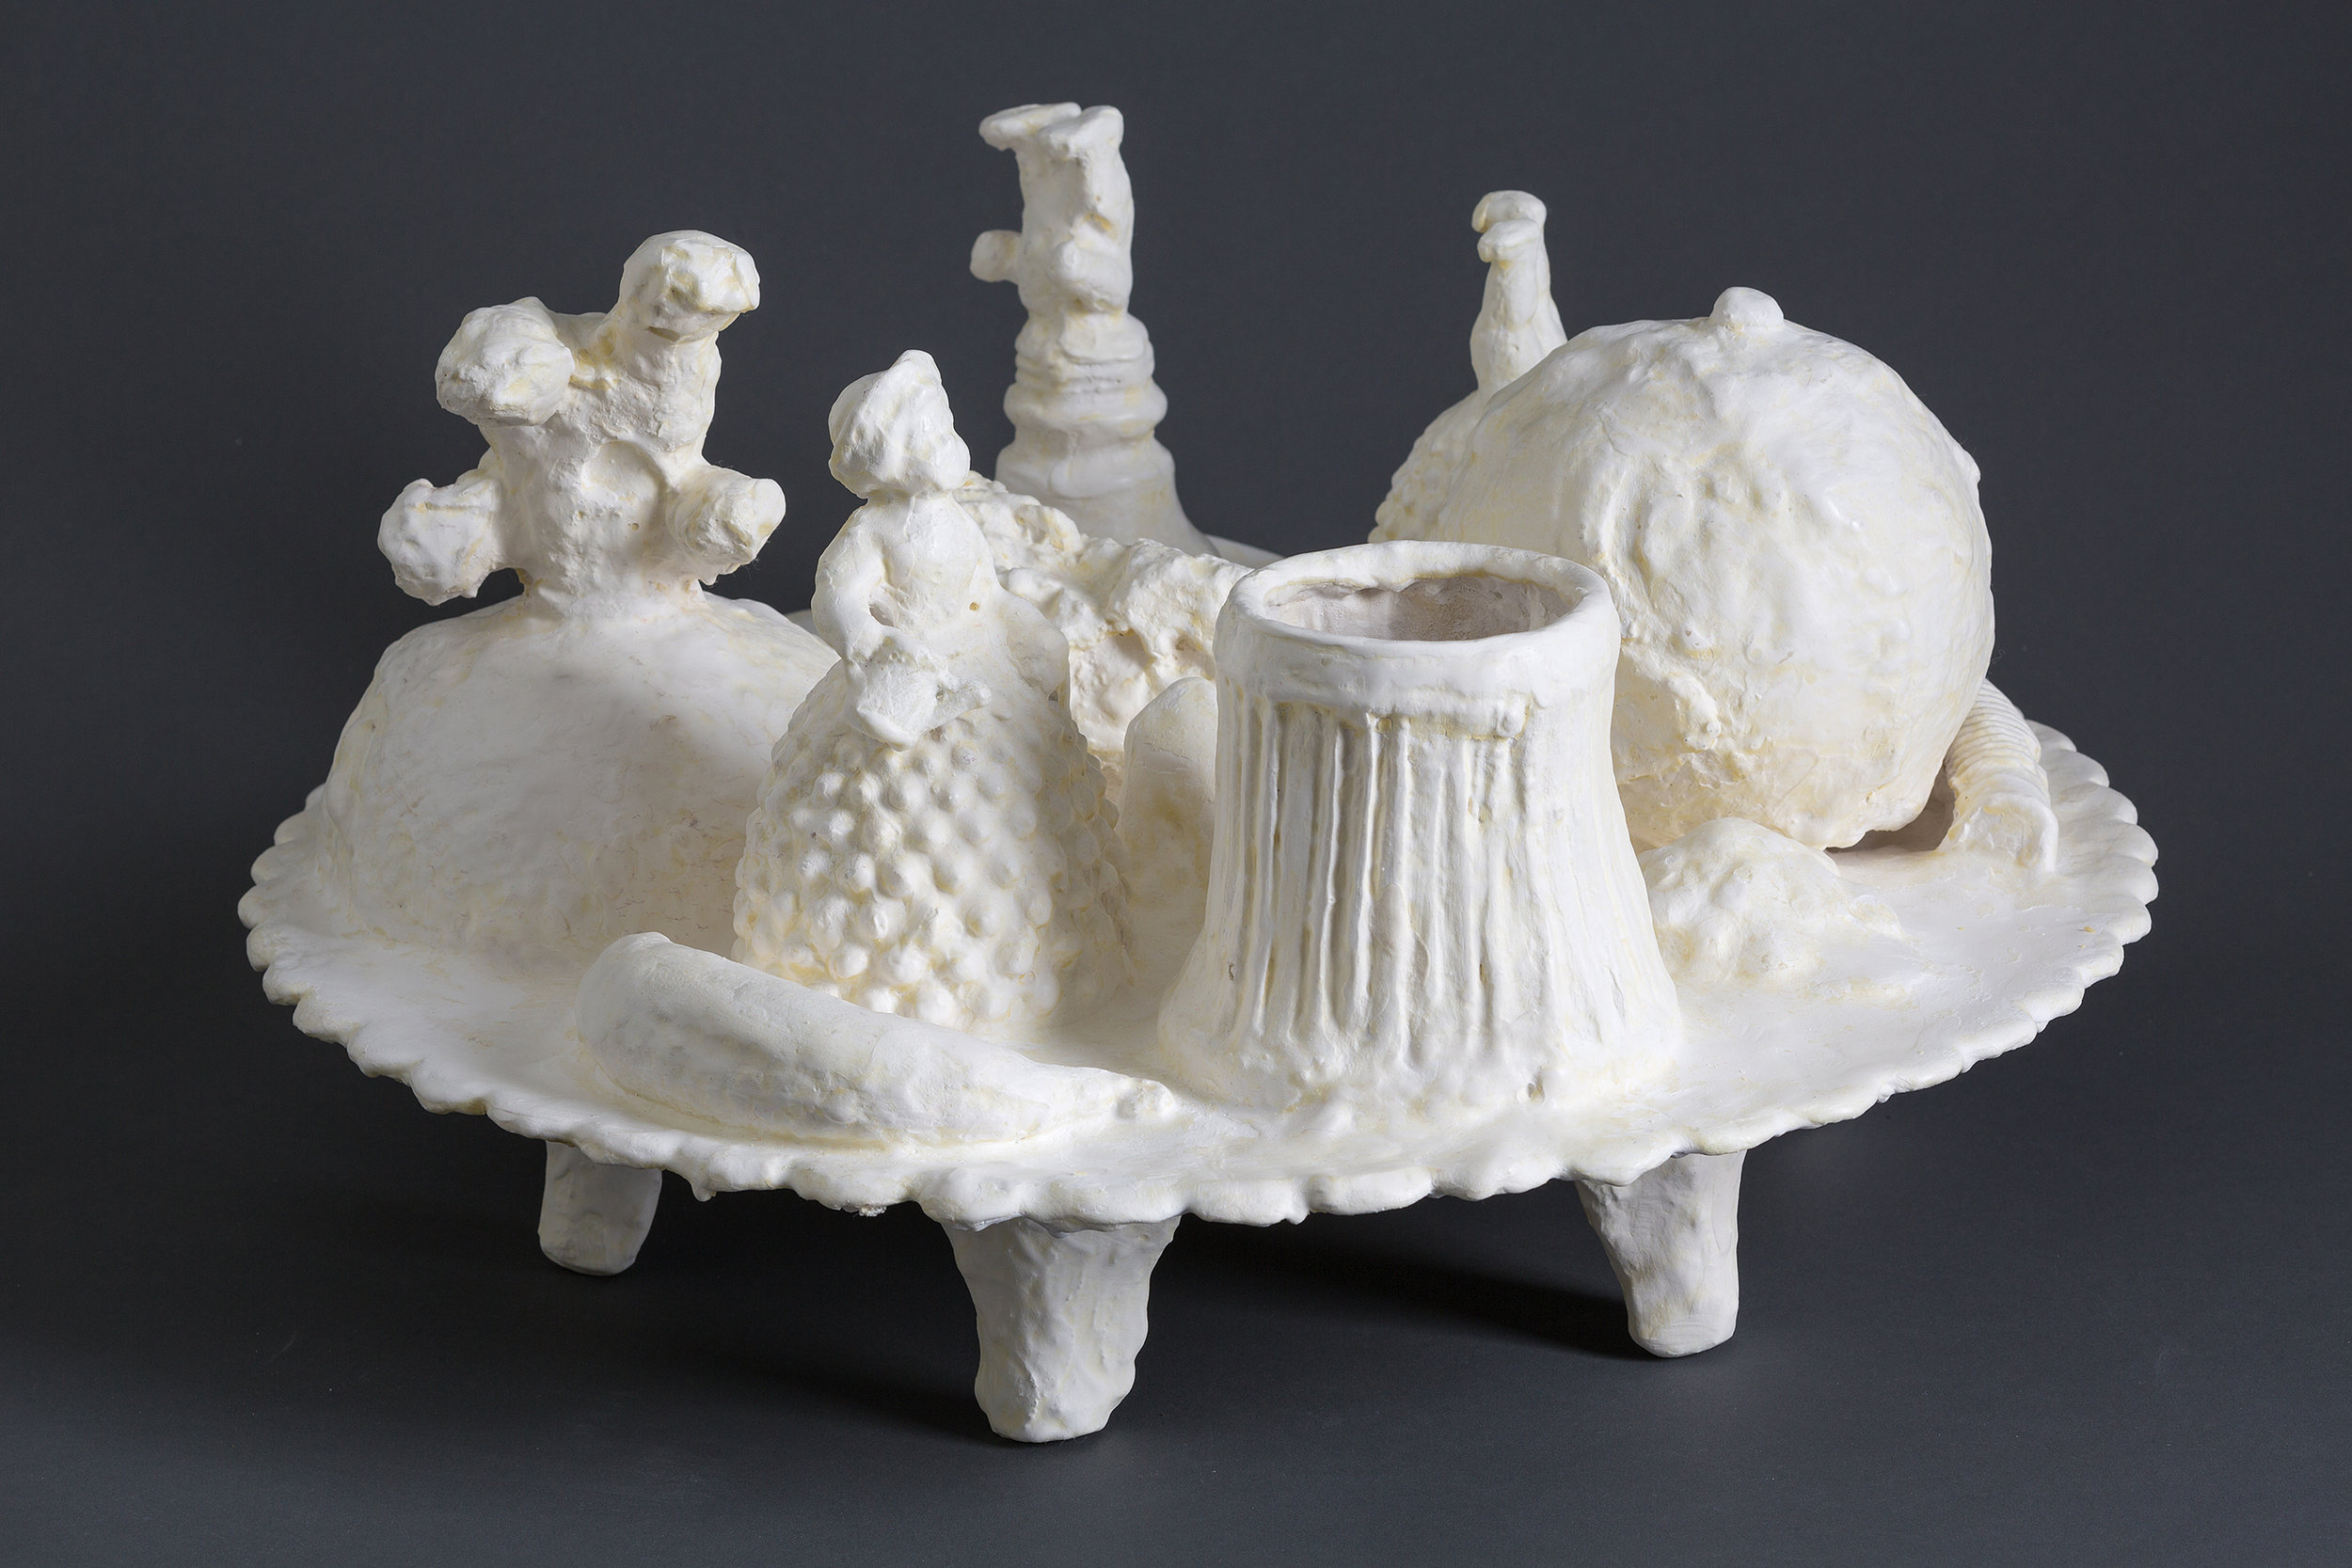 Jennifer Odem    Flummery,    2012    Cast hydrocal, found objects    7 inches high